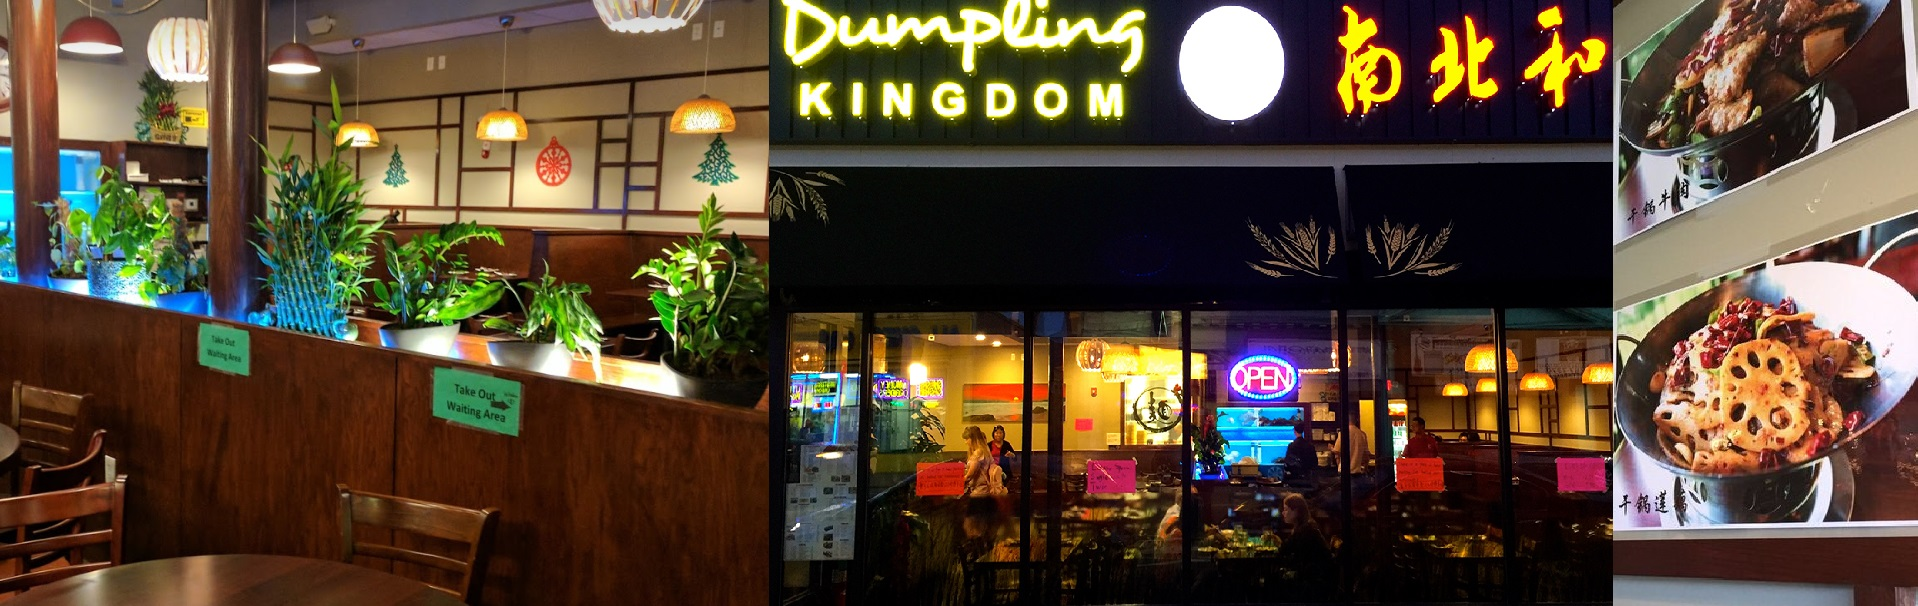 Your favorite Chinese food at Dumpling Kingdom